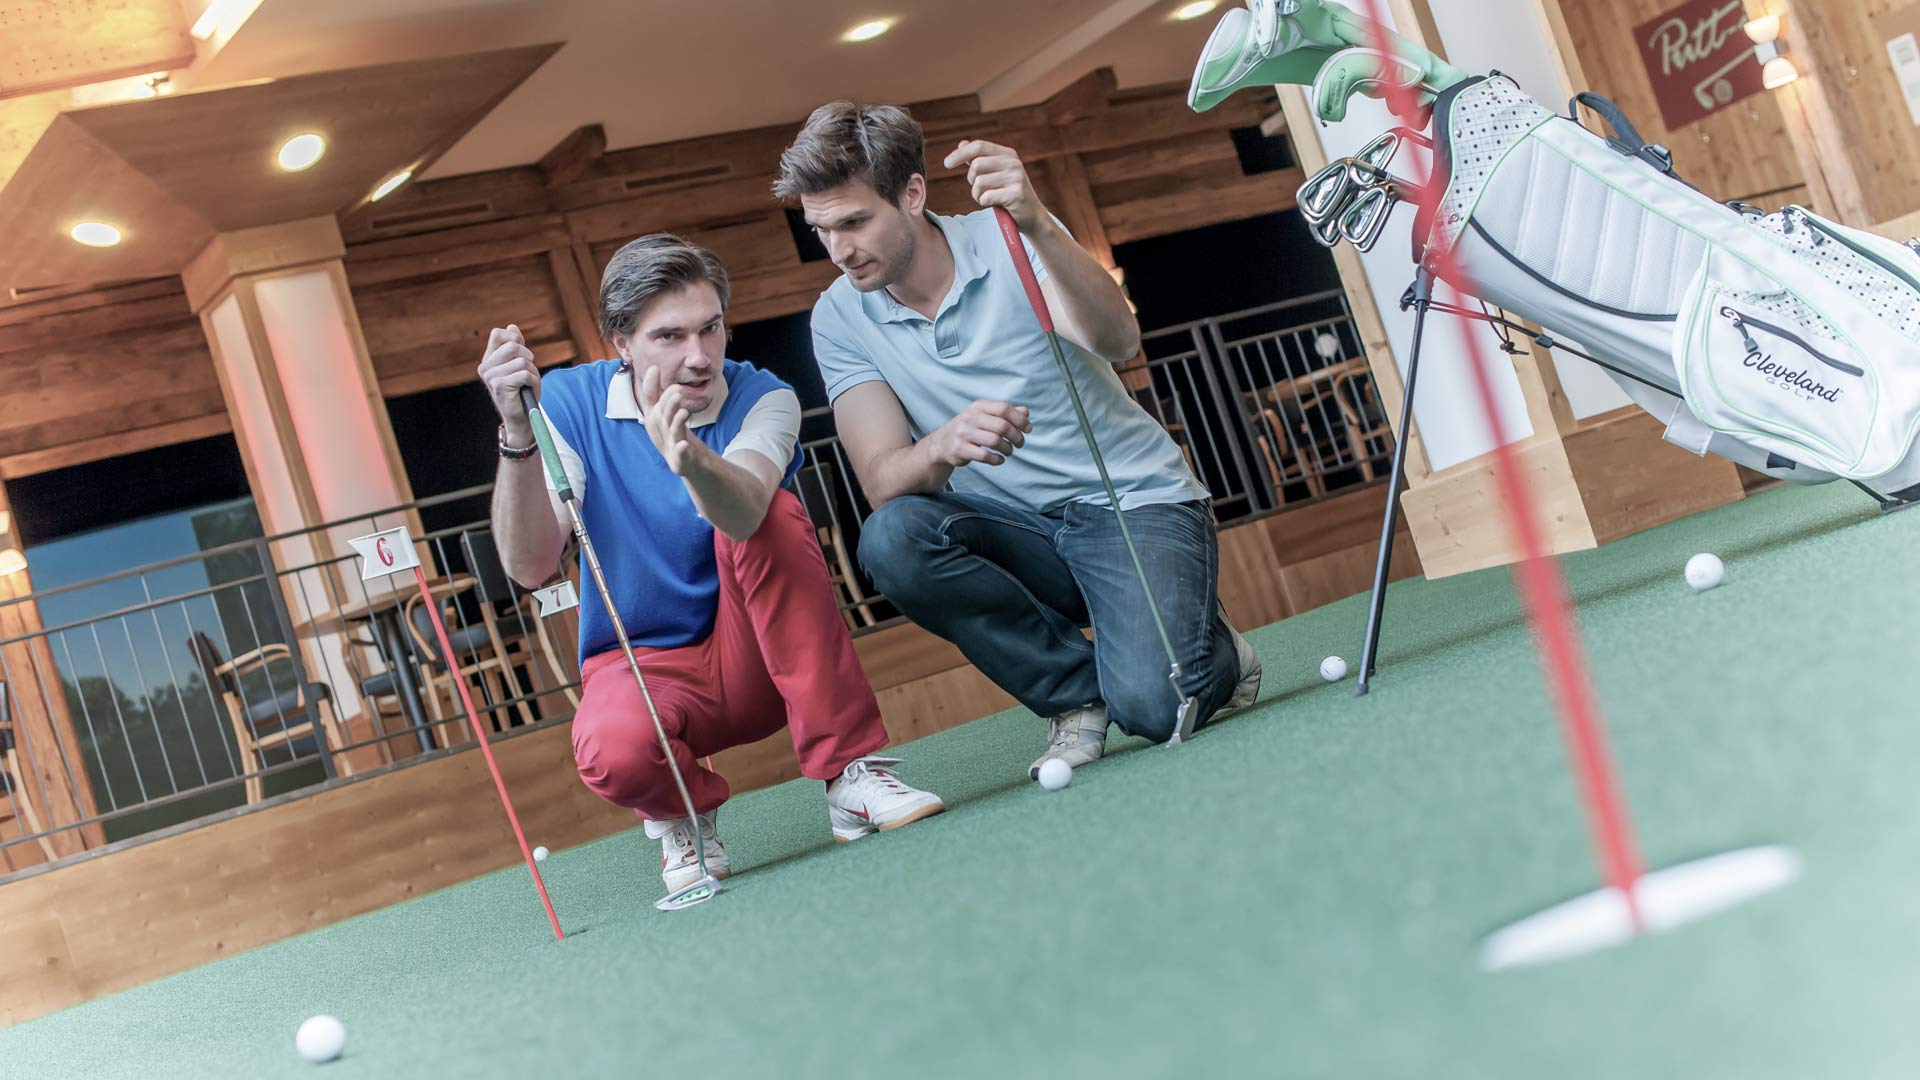 Indoorgolf in Hochgurgl